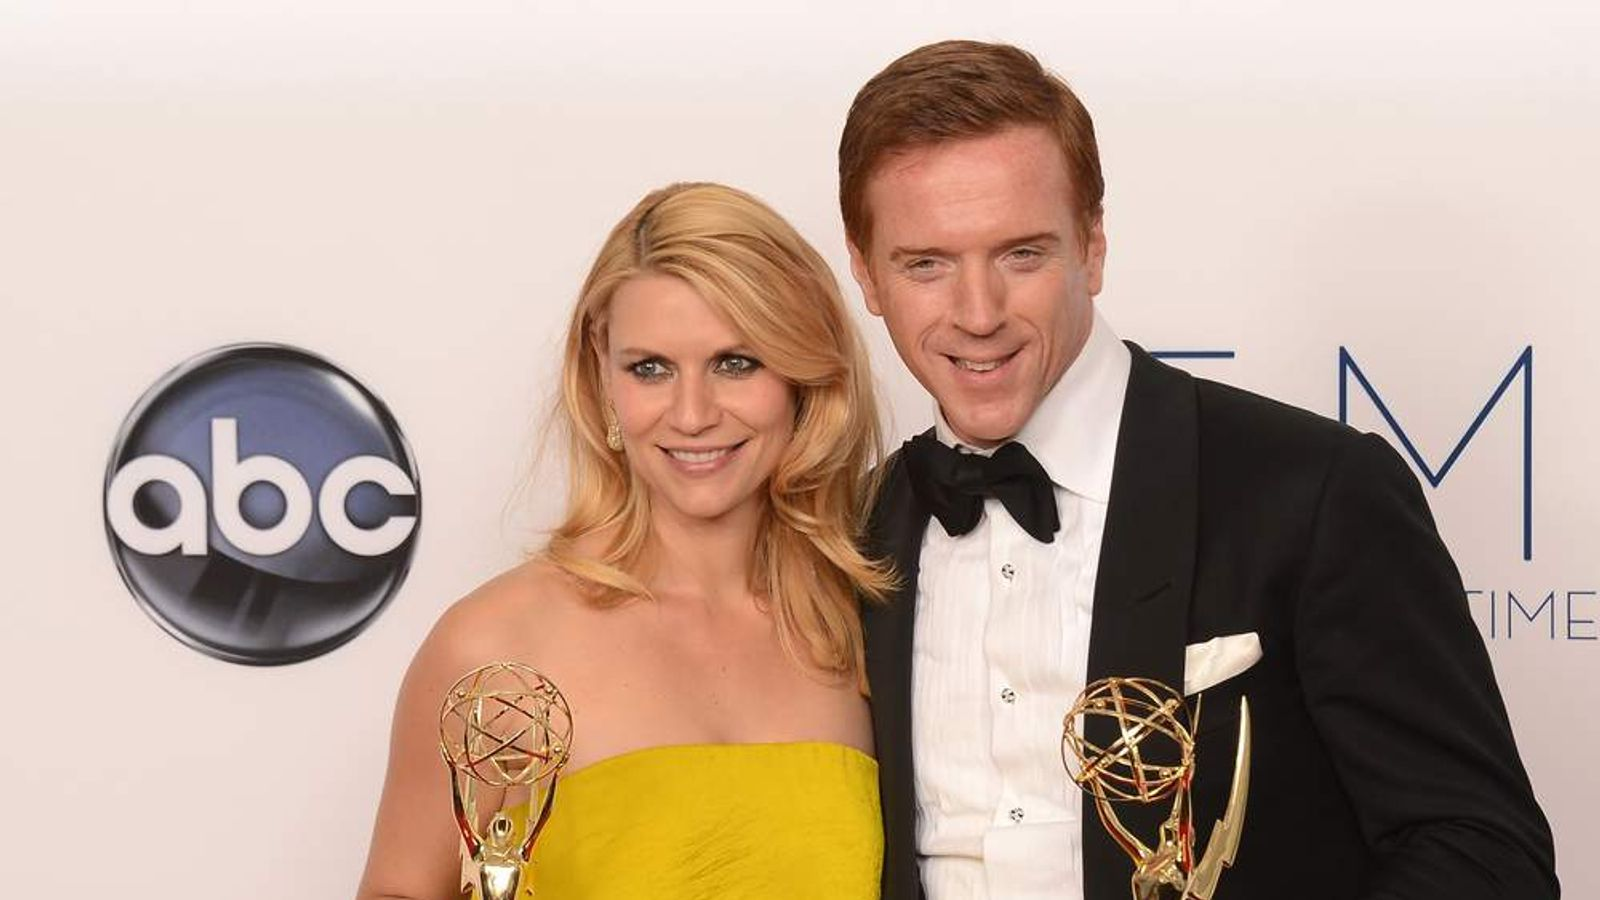 Claire Danes and Damian Lewis with their Emmys